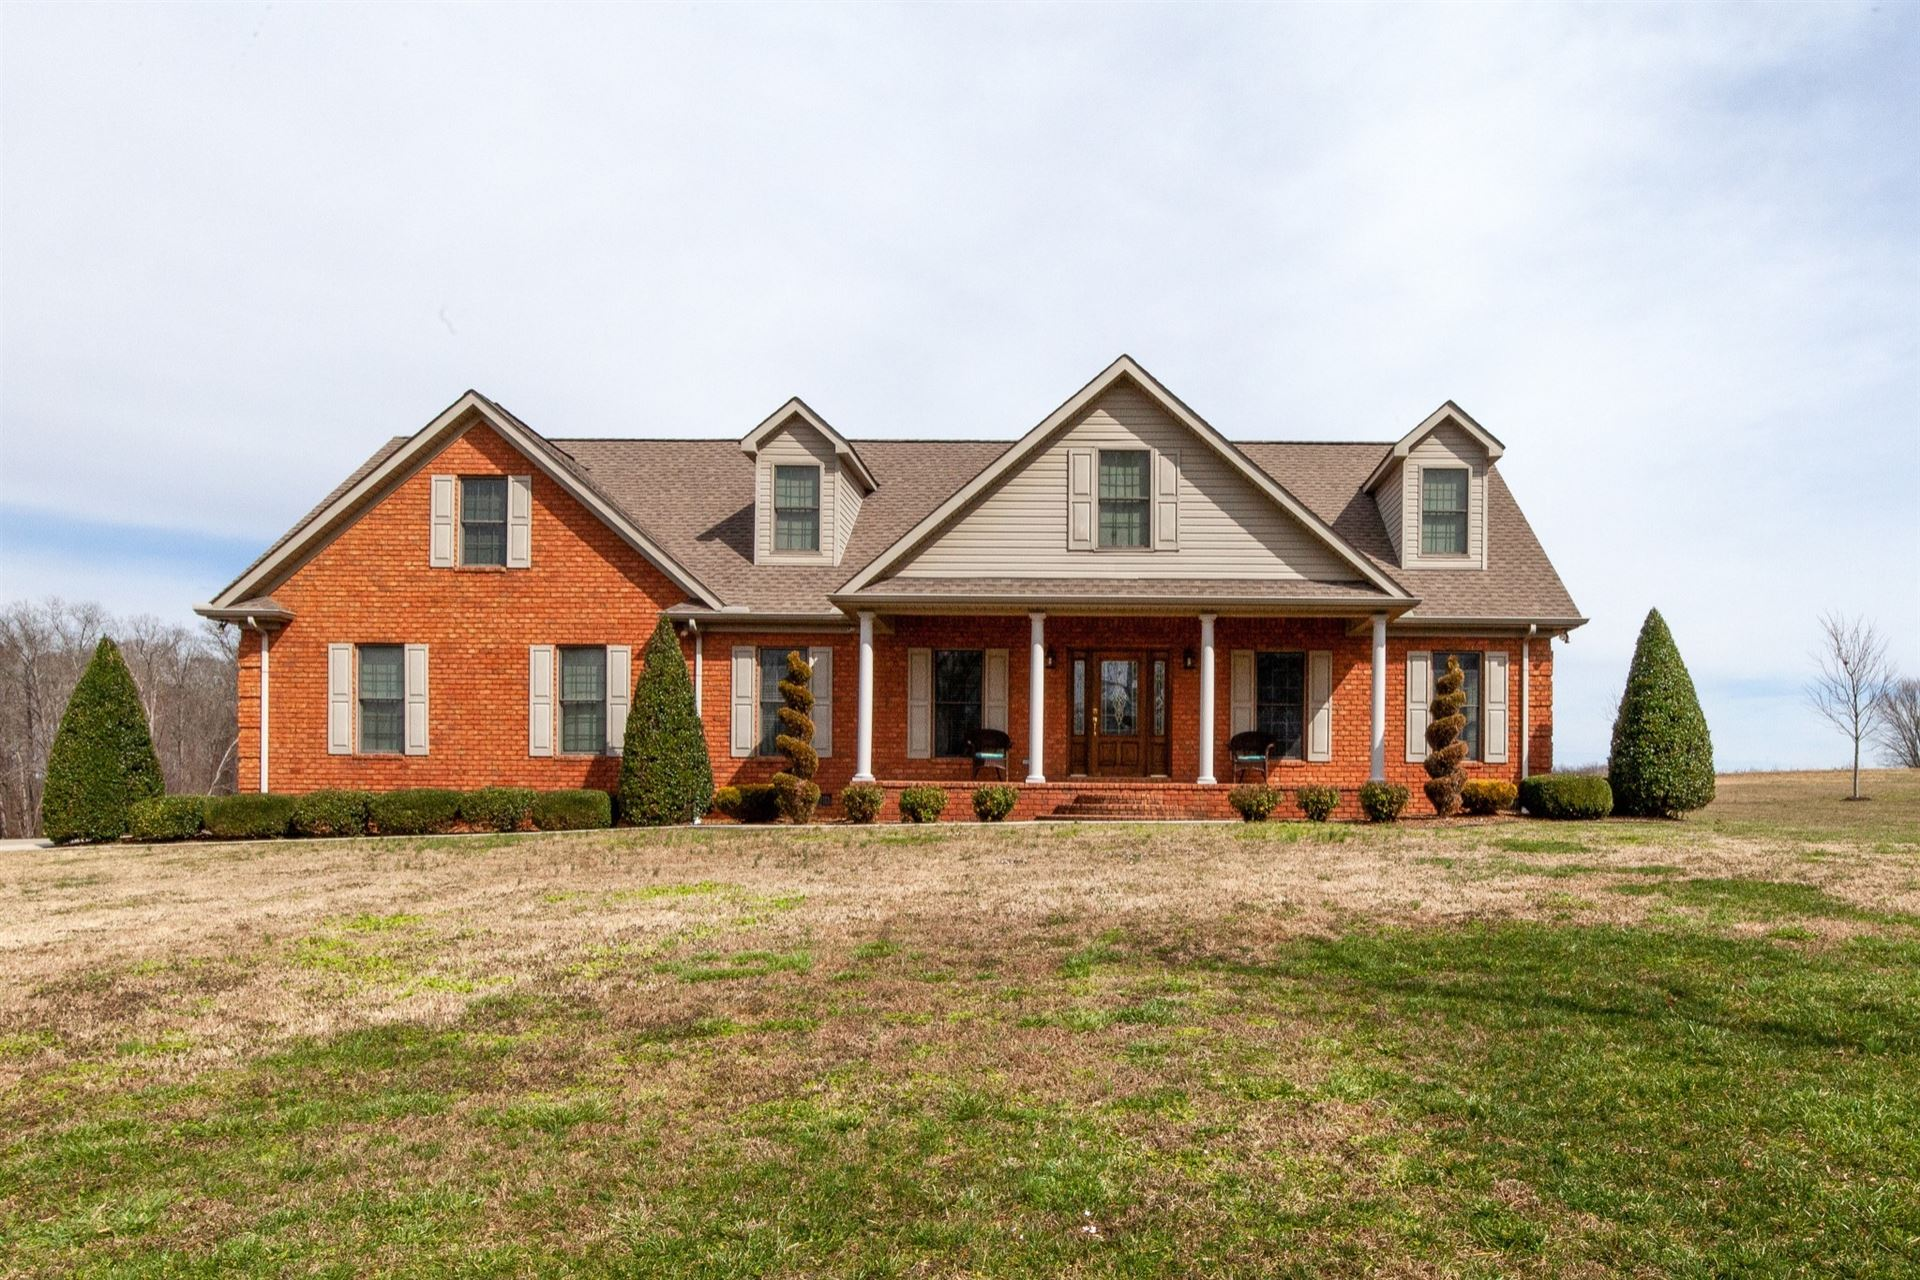 210 Game Ridge Rd, Smithville, TN 37166 - MLS#: 2200861